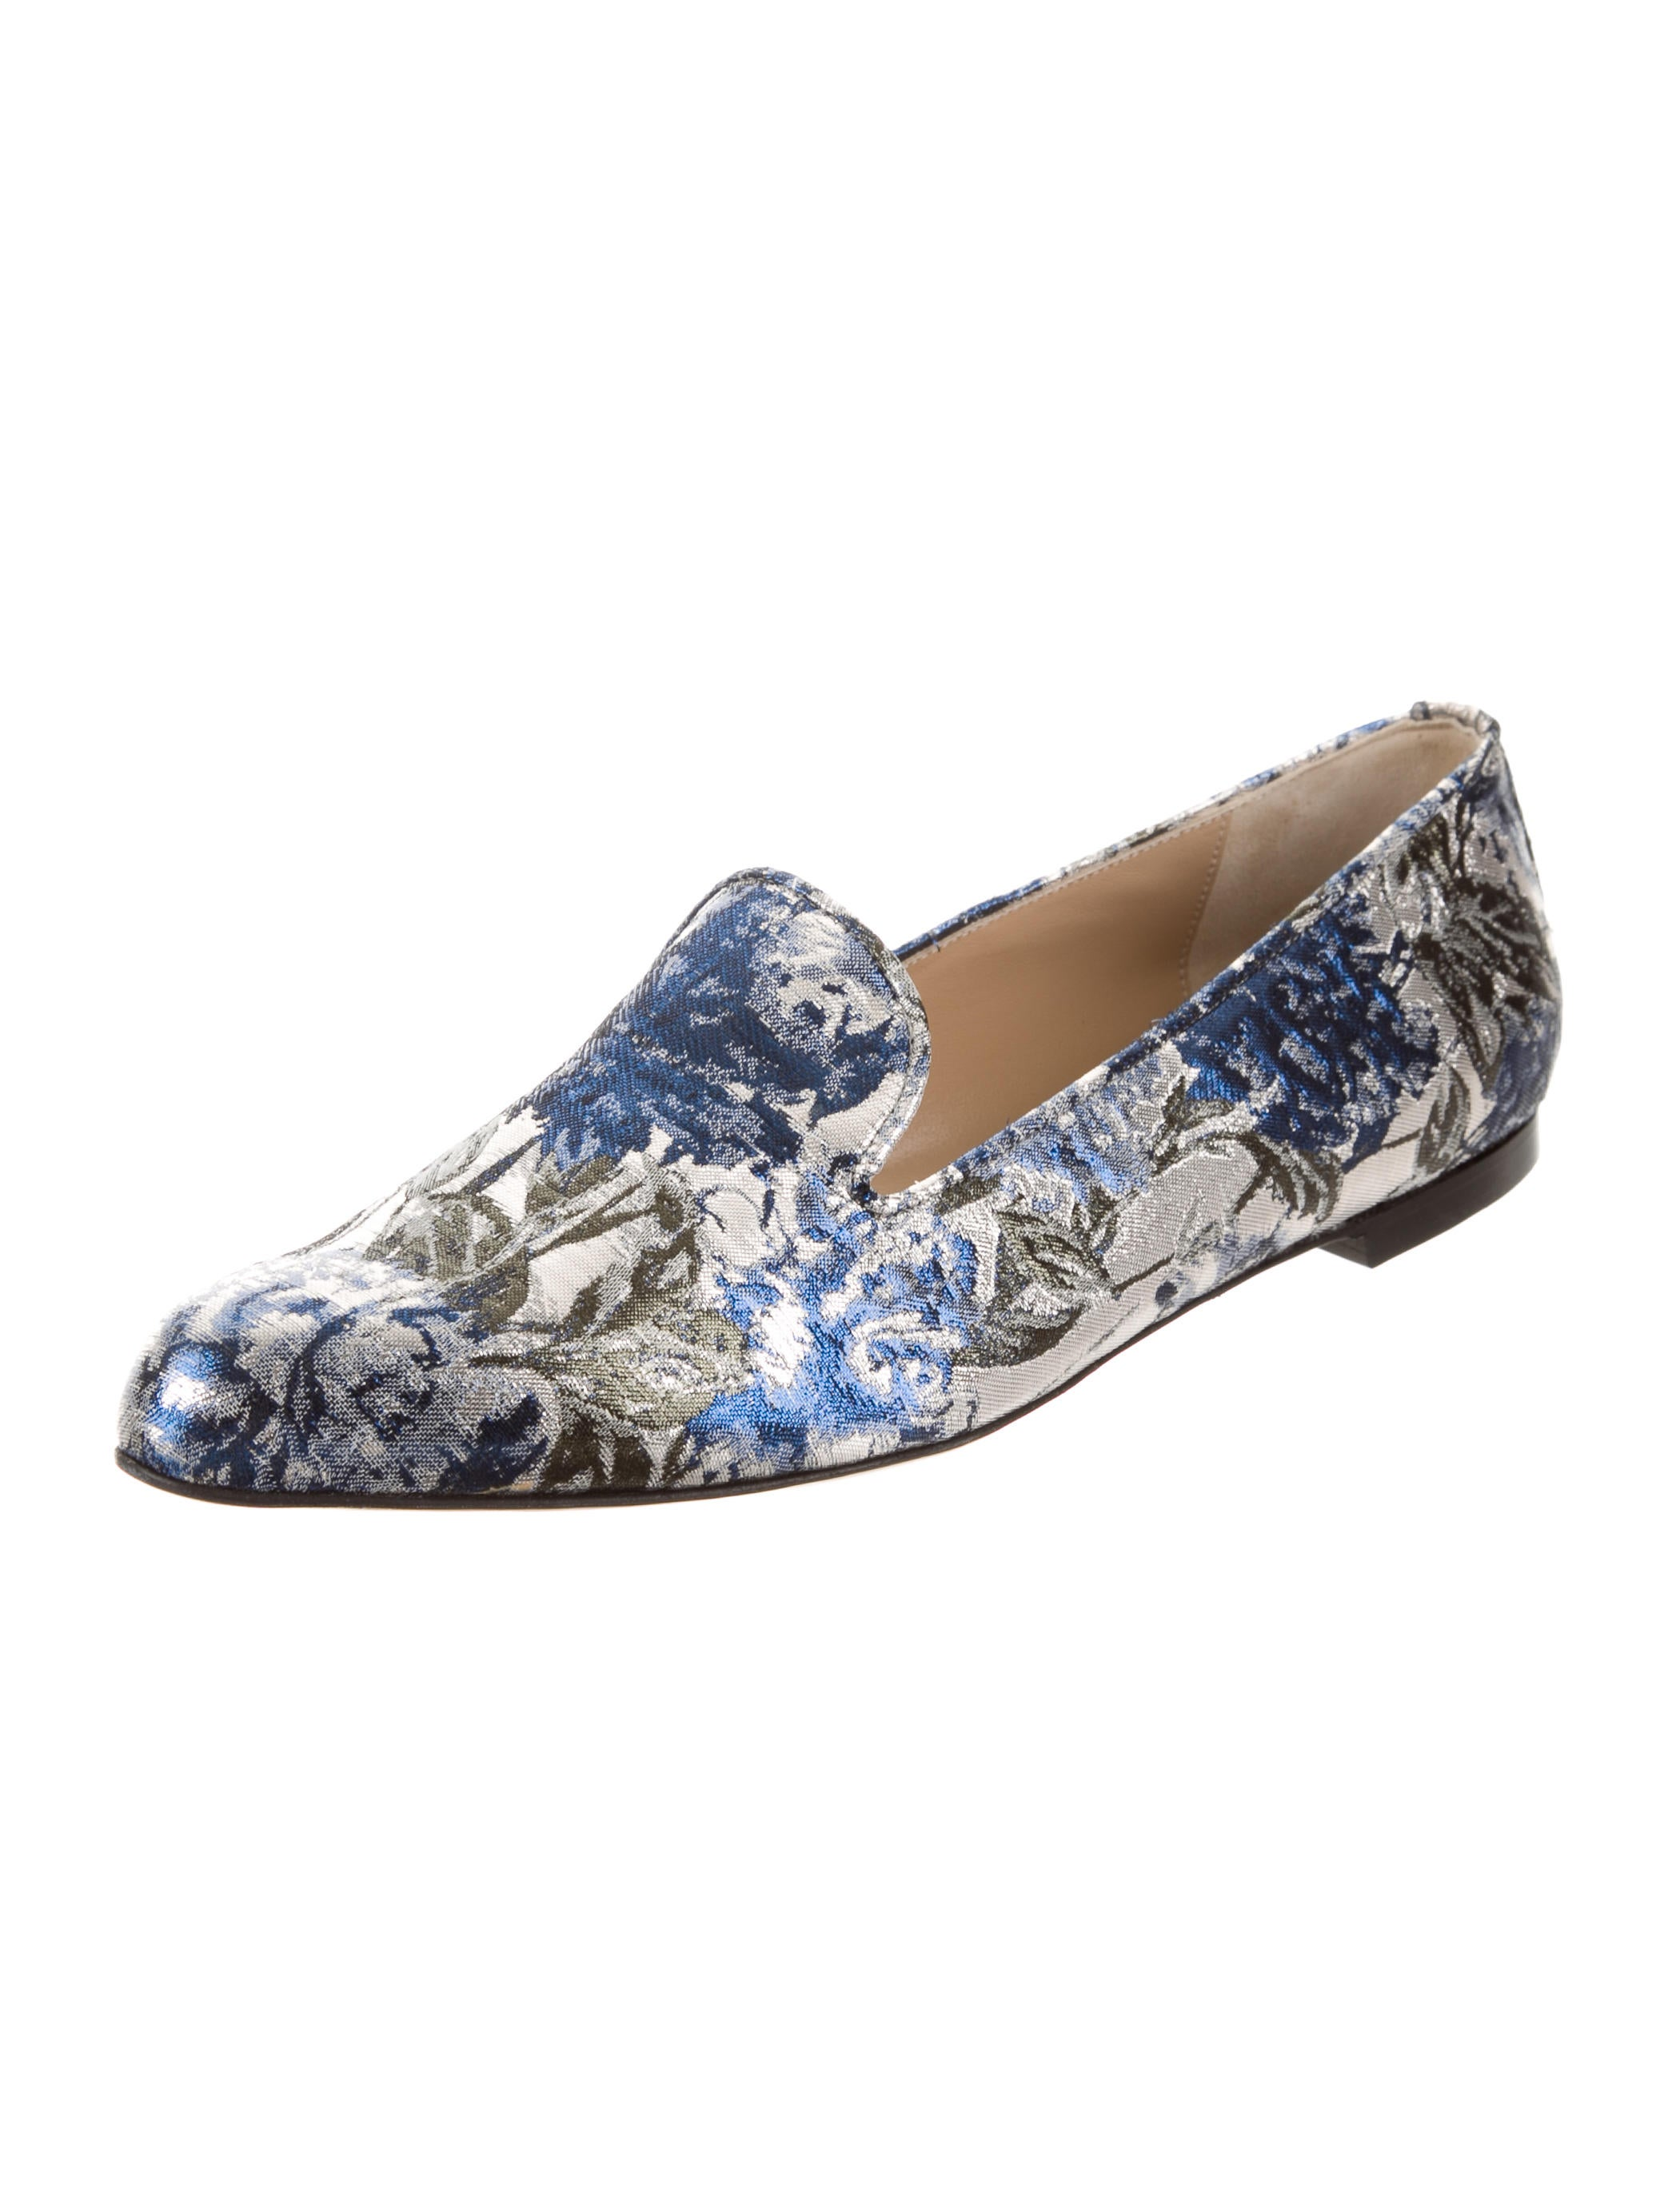 Paul Andrew x Carolina Herrera Metallic Jacquard Flats w/ Tags websites yIdqaFq3